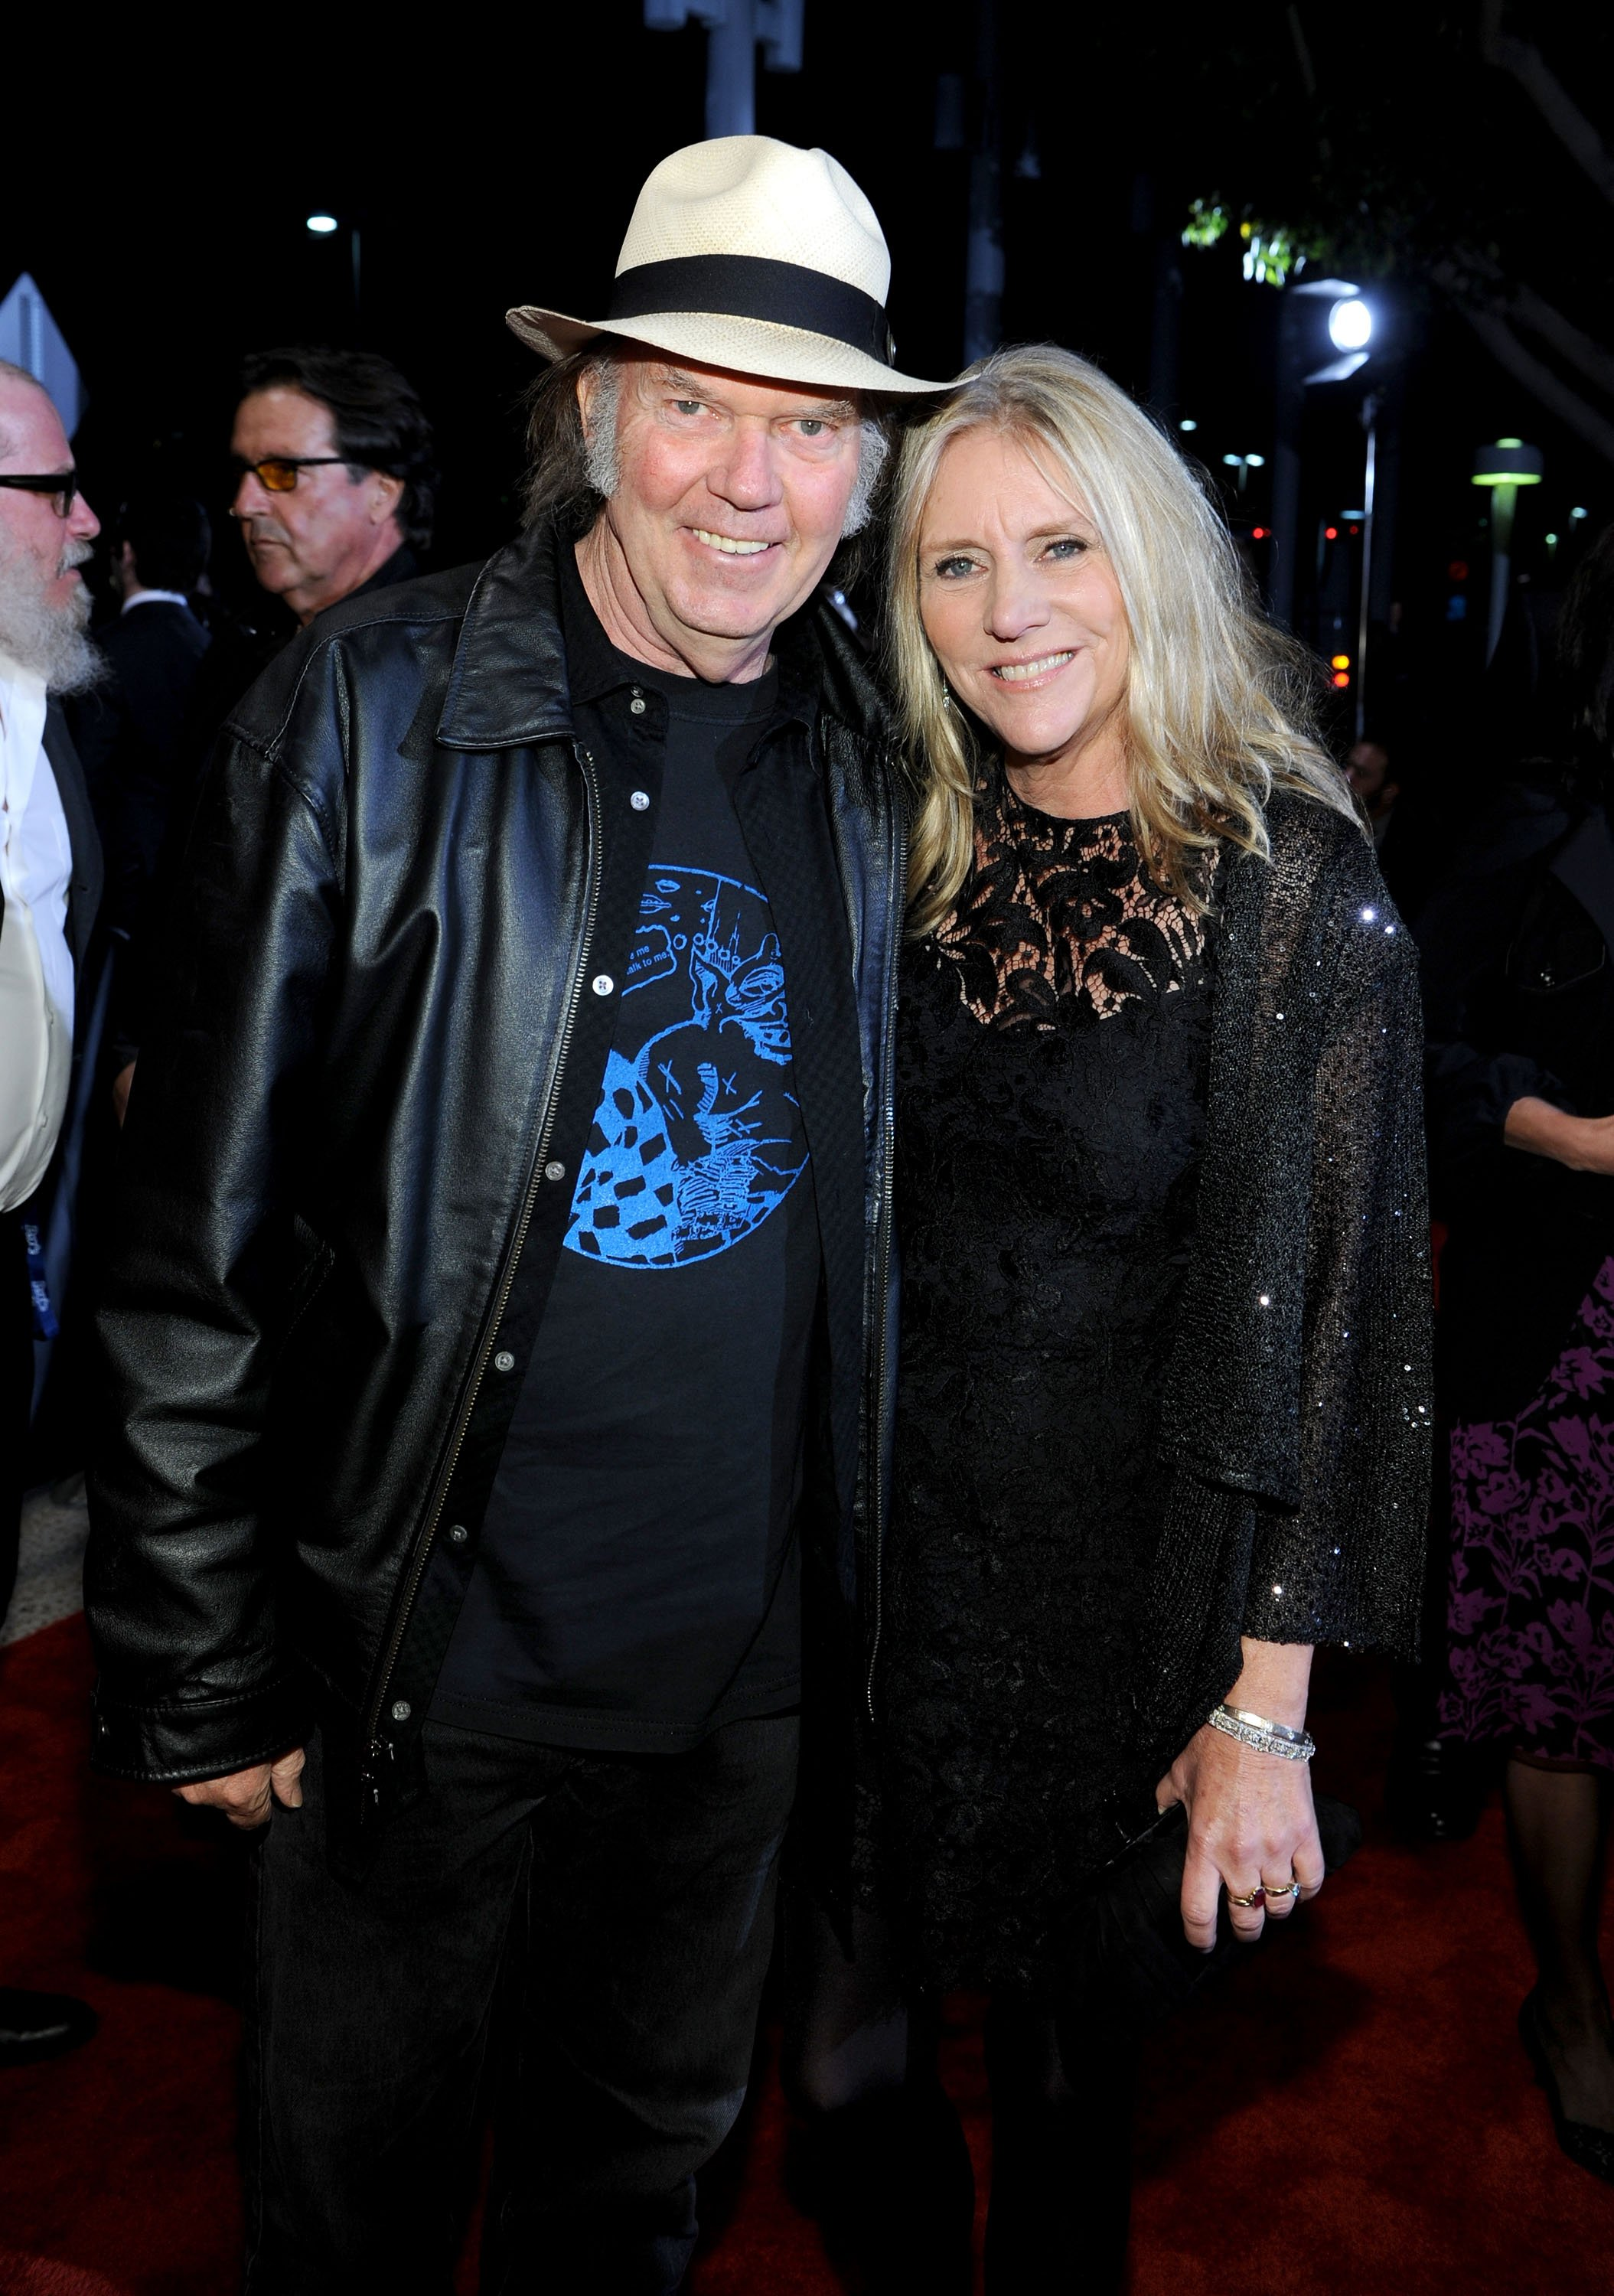 Neil Young and Pegi Young attend the 2012 MusiCares Person of the Year Tribute in Los Angeles, California on February 10, 2012 | Photo: Getty Images